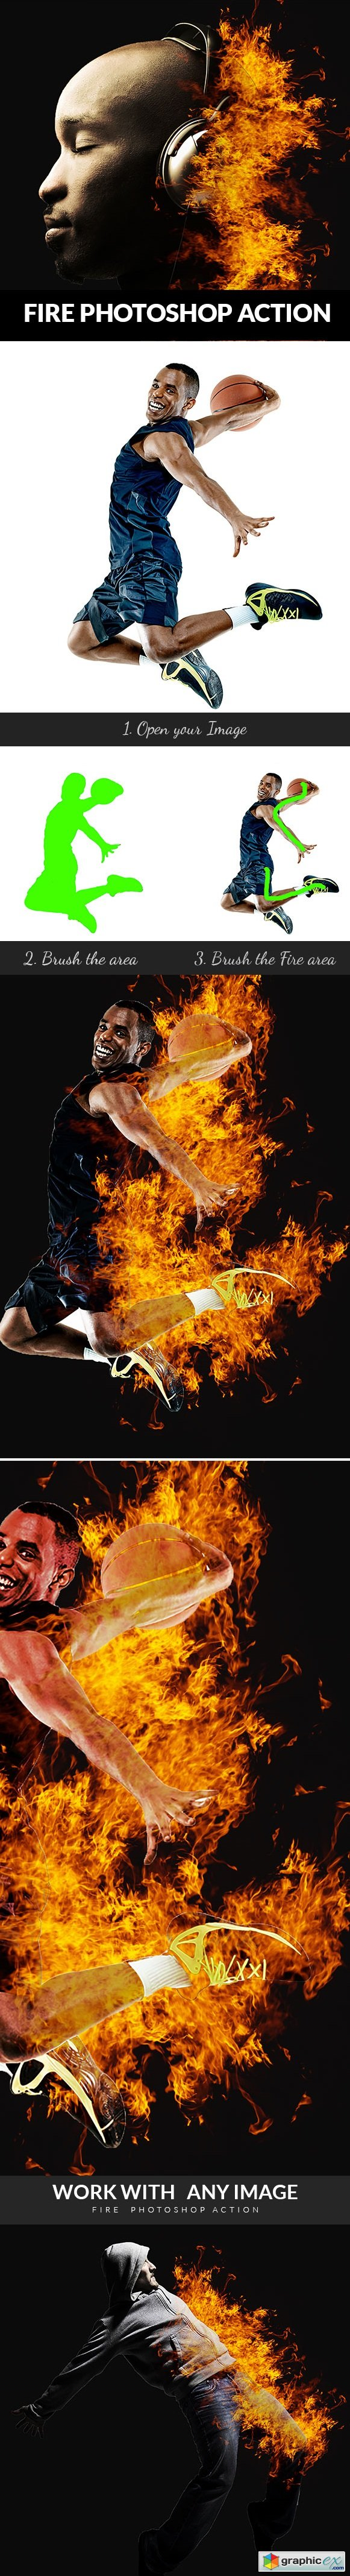 Fire Photoshop Action 20802507